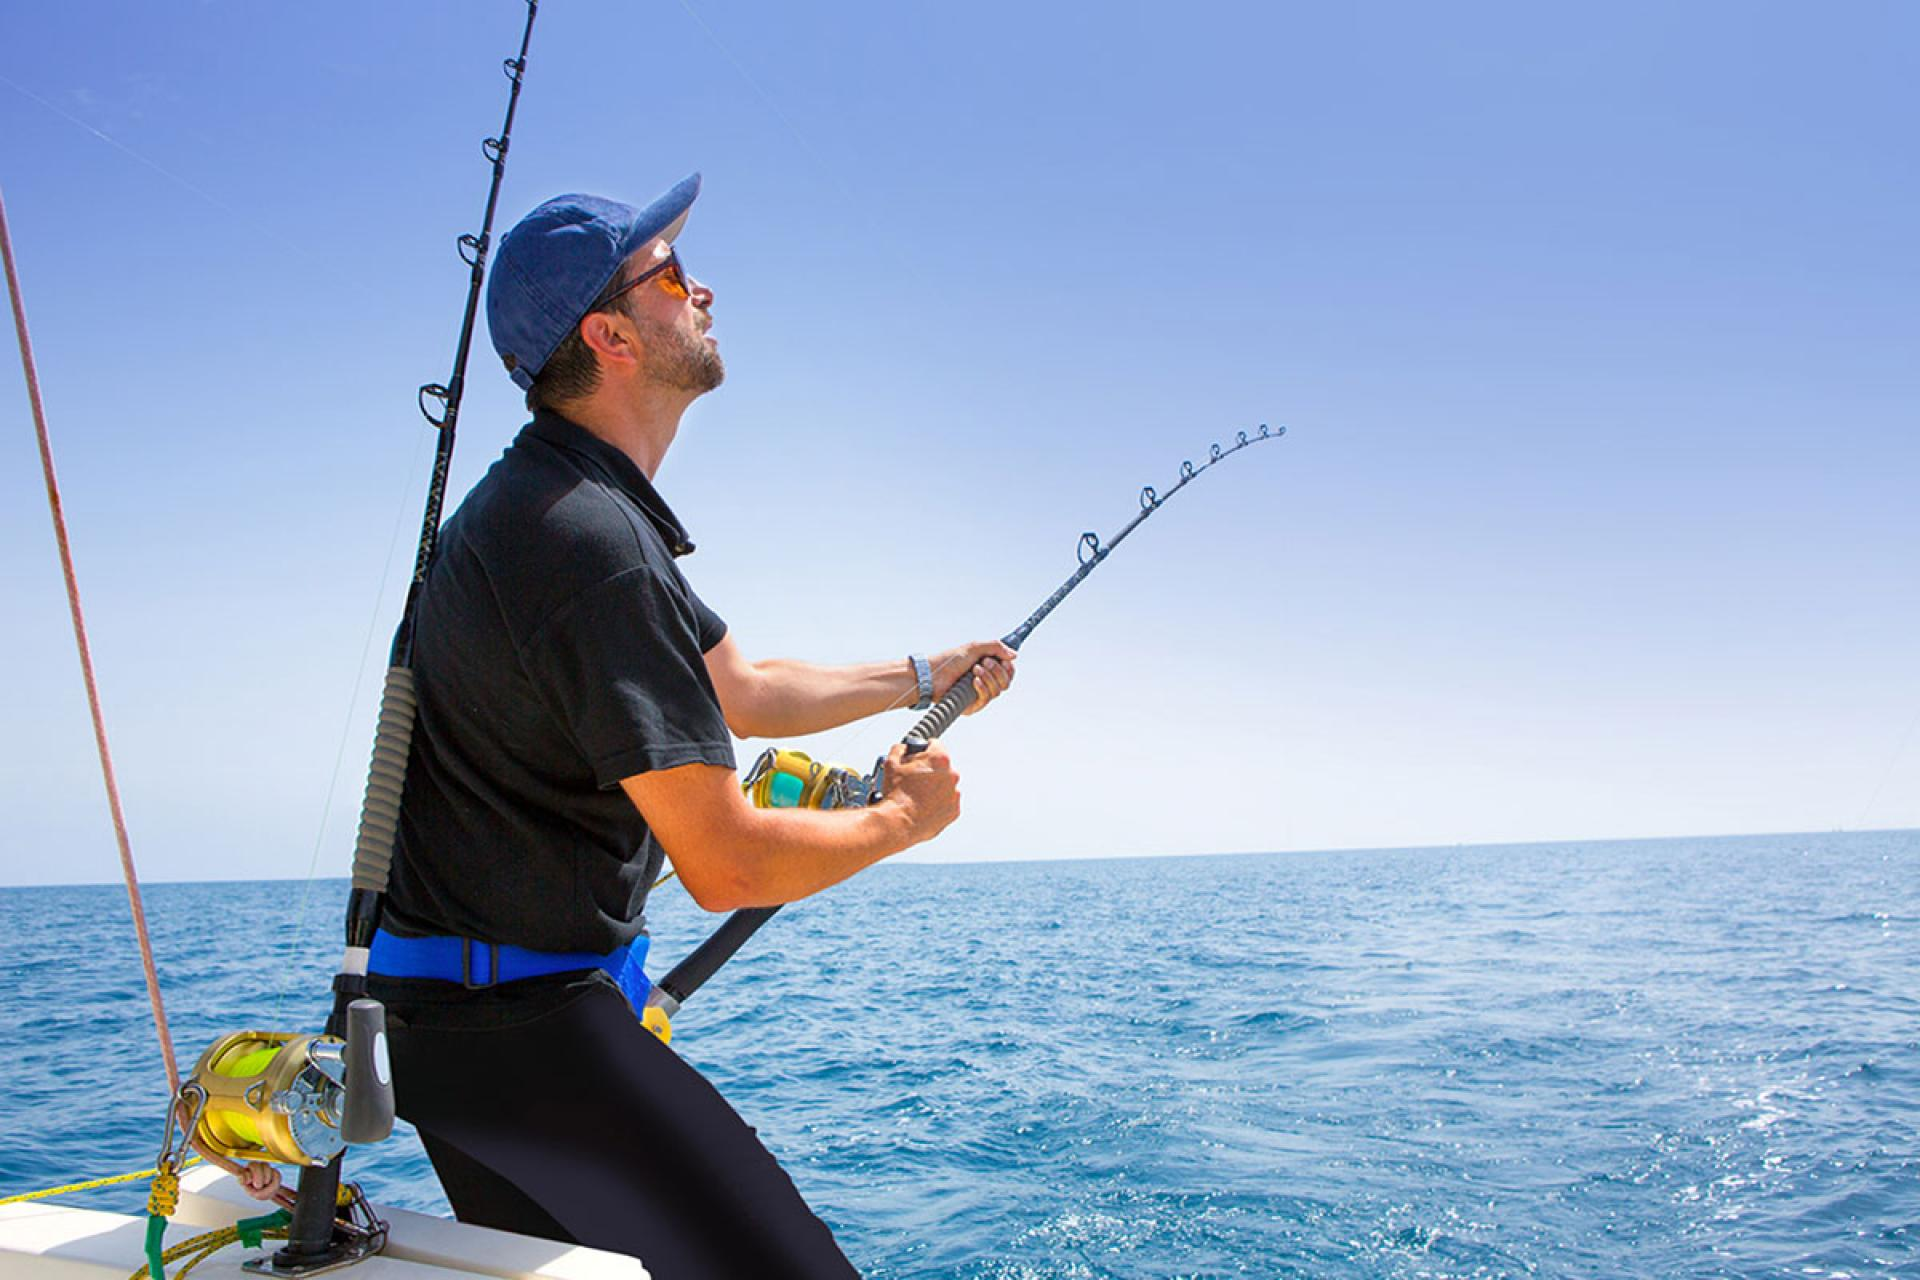 book_a_Fishing_Boat_Trip_with_rhodes_rental_services_01